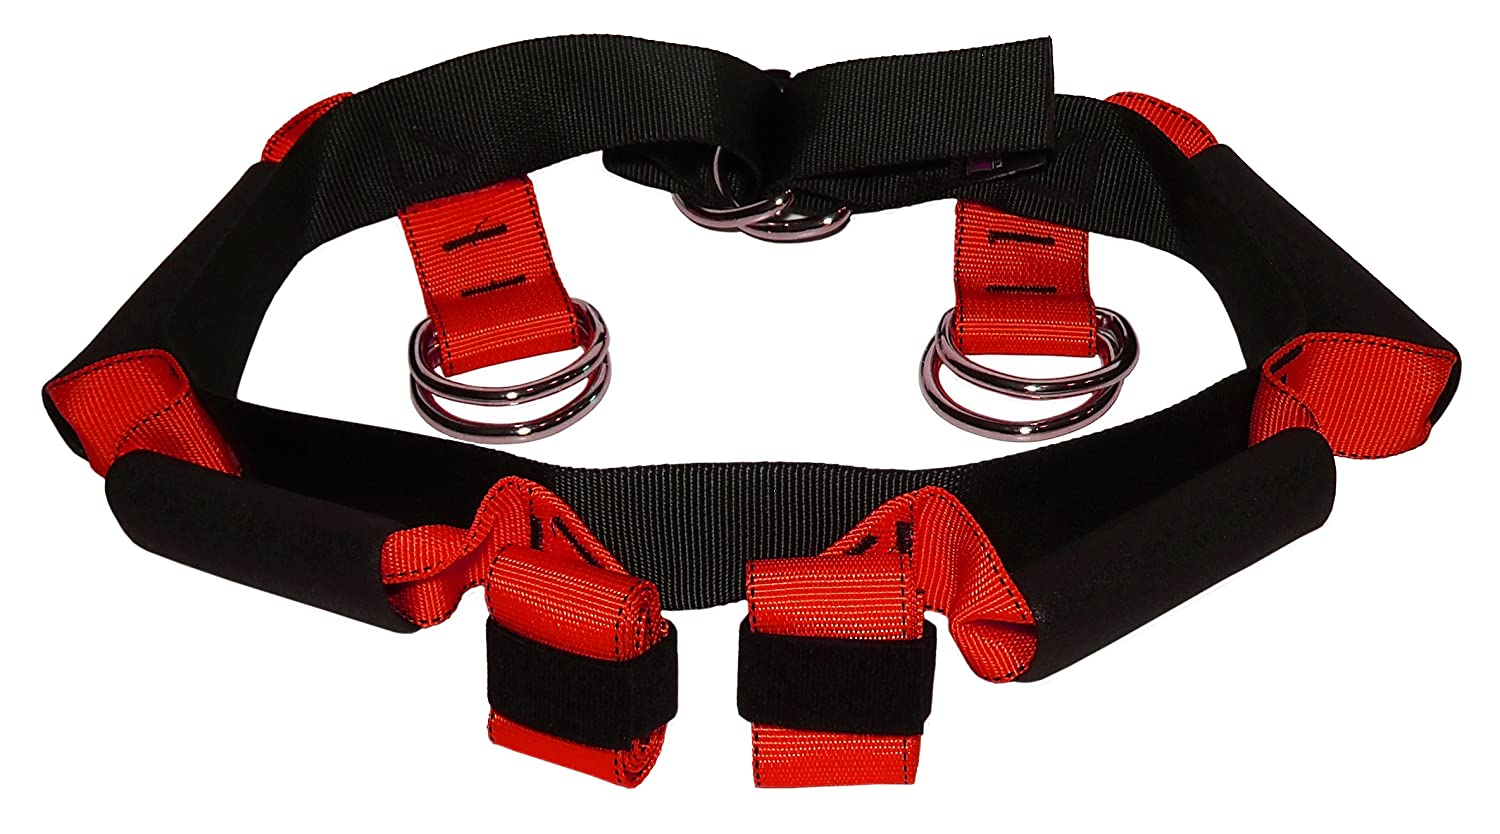 Amazon.com: Lift ist Harness - Fall Prevention Gait belt to ...